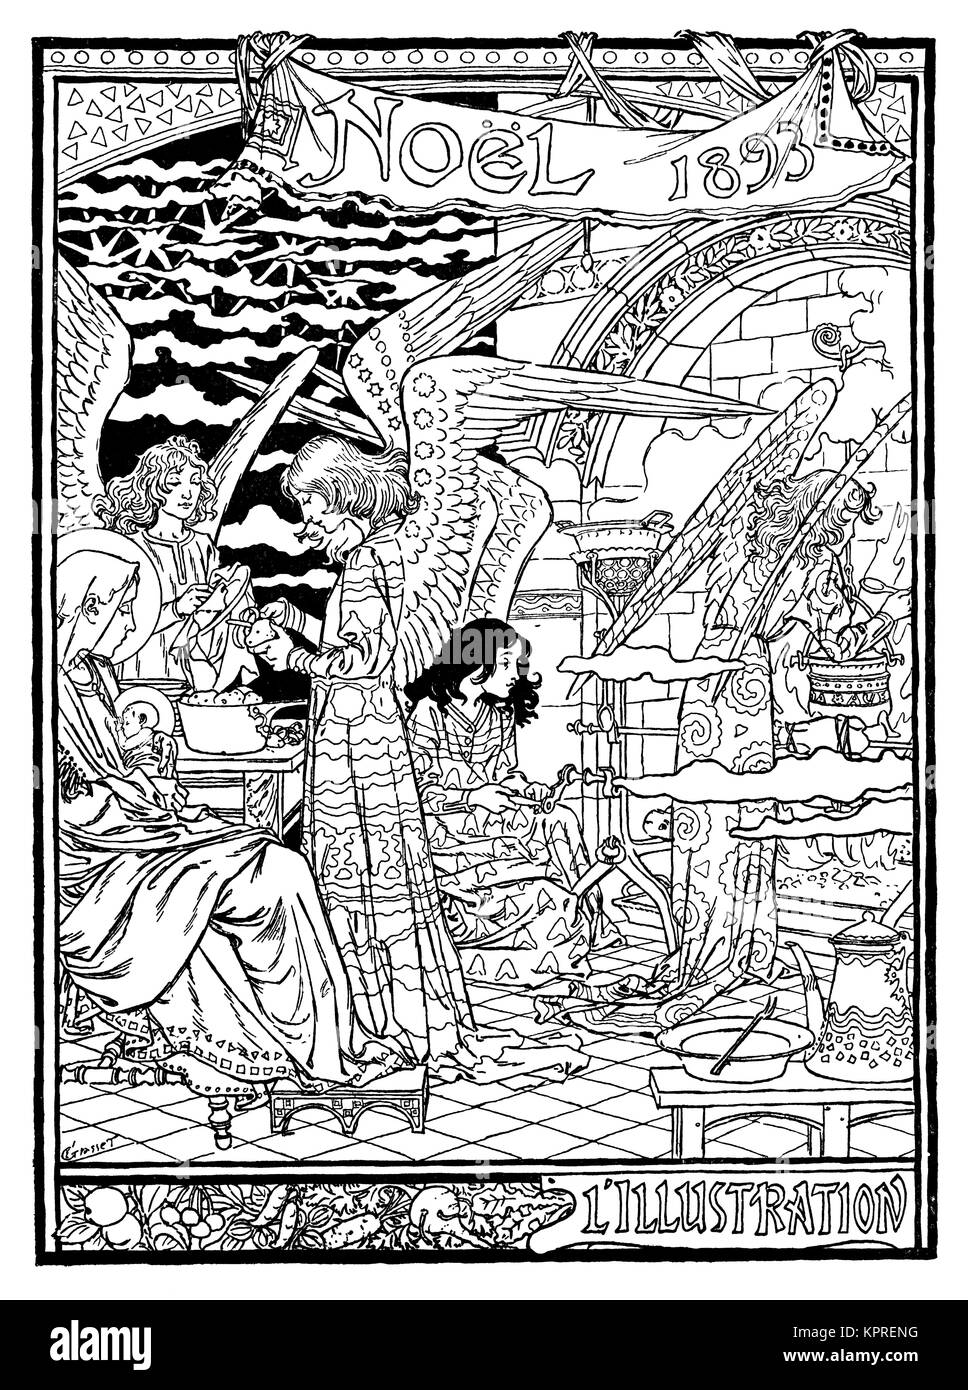 1893 angels Christmas book cover design by artist Eugene Grasset from Volume 4 of The Studio Magazine - Stock Image